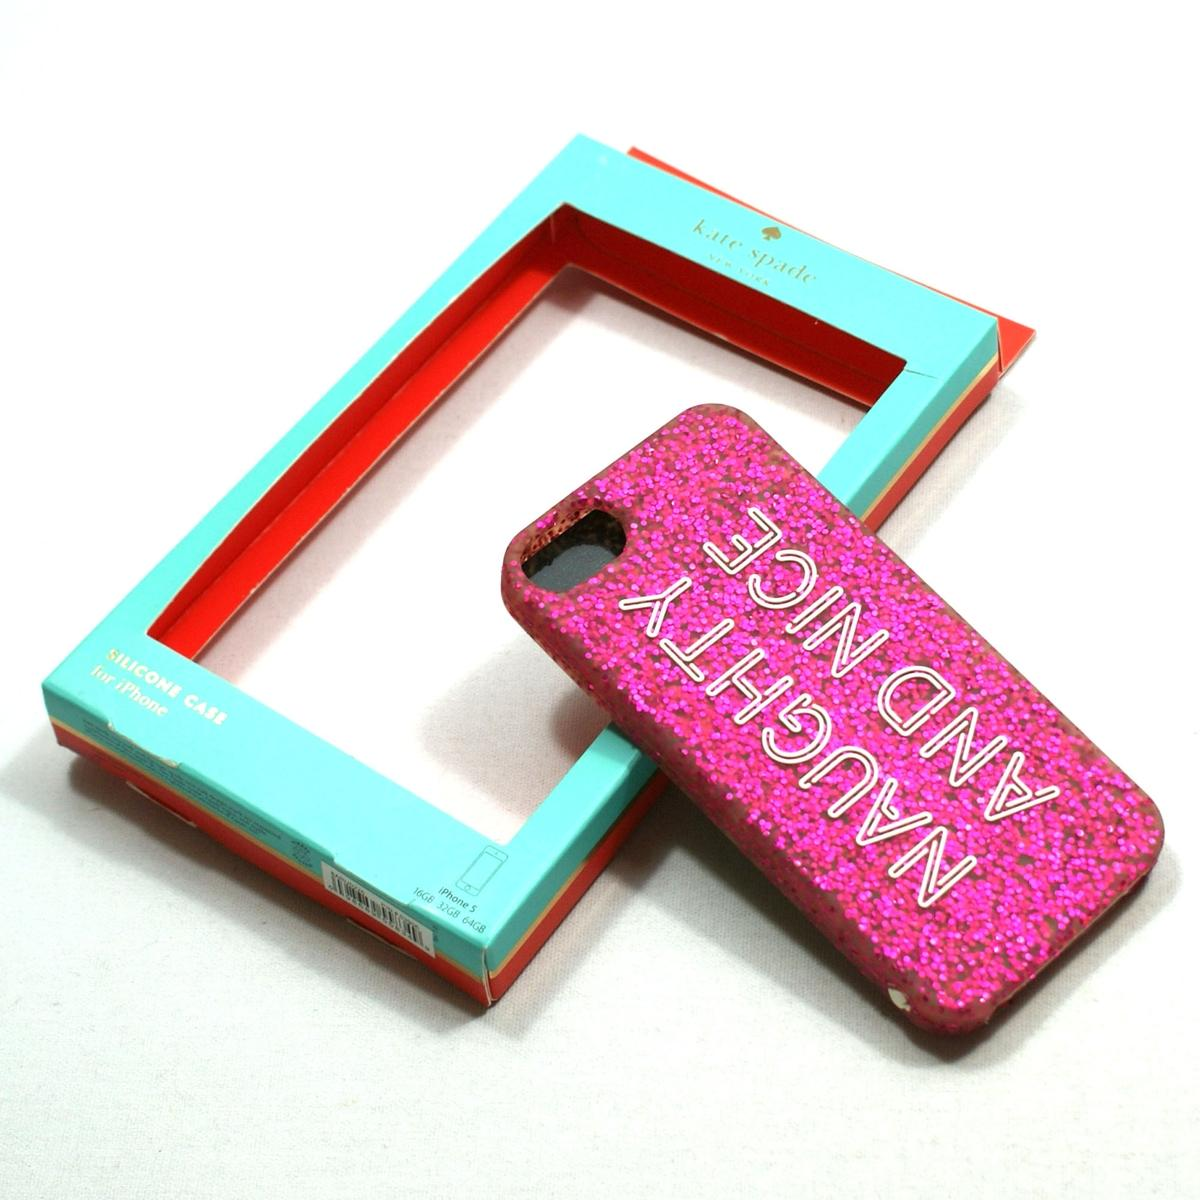 Kate Spade Iphone 5 Case Premium Silicone Nice Naughty For